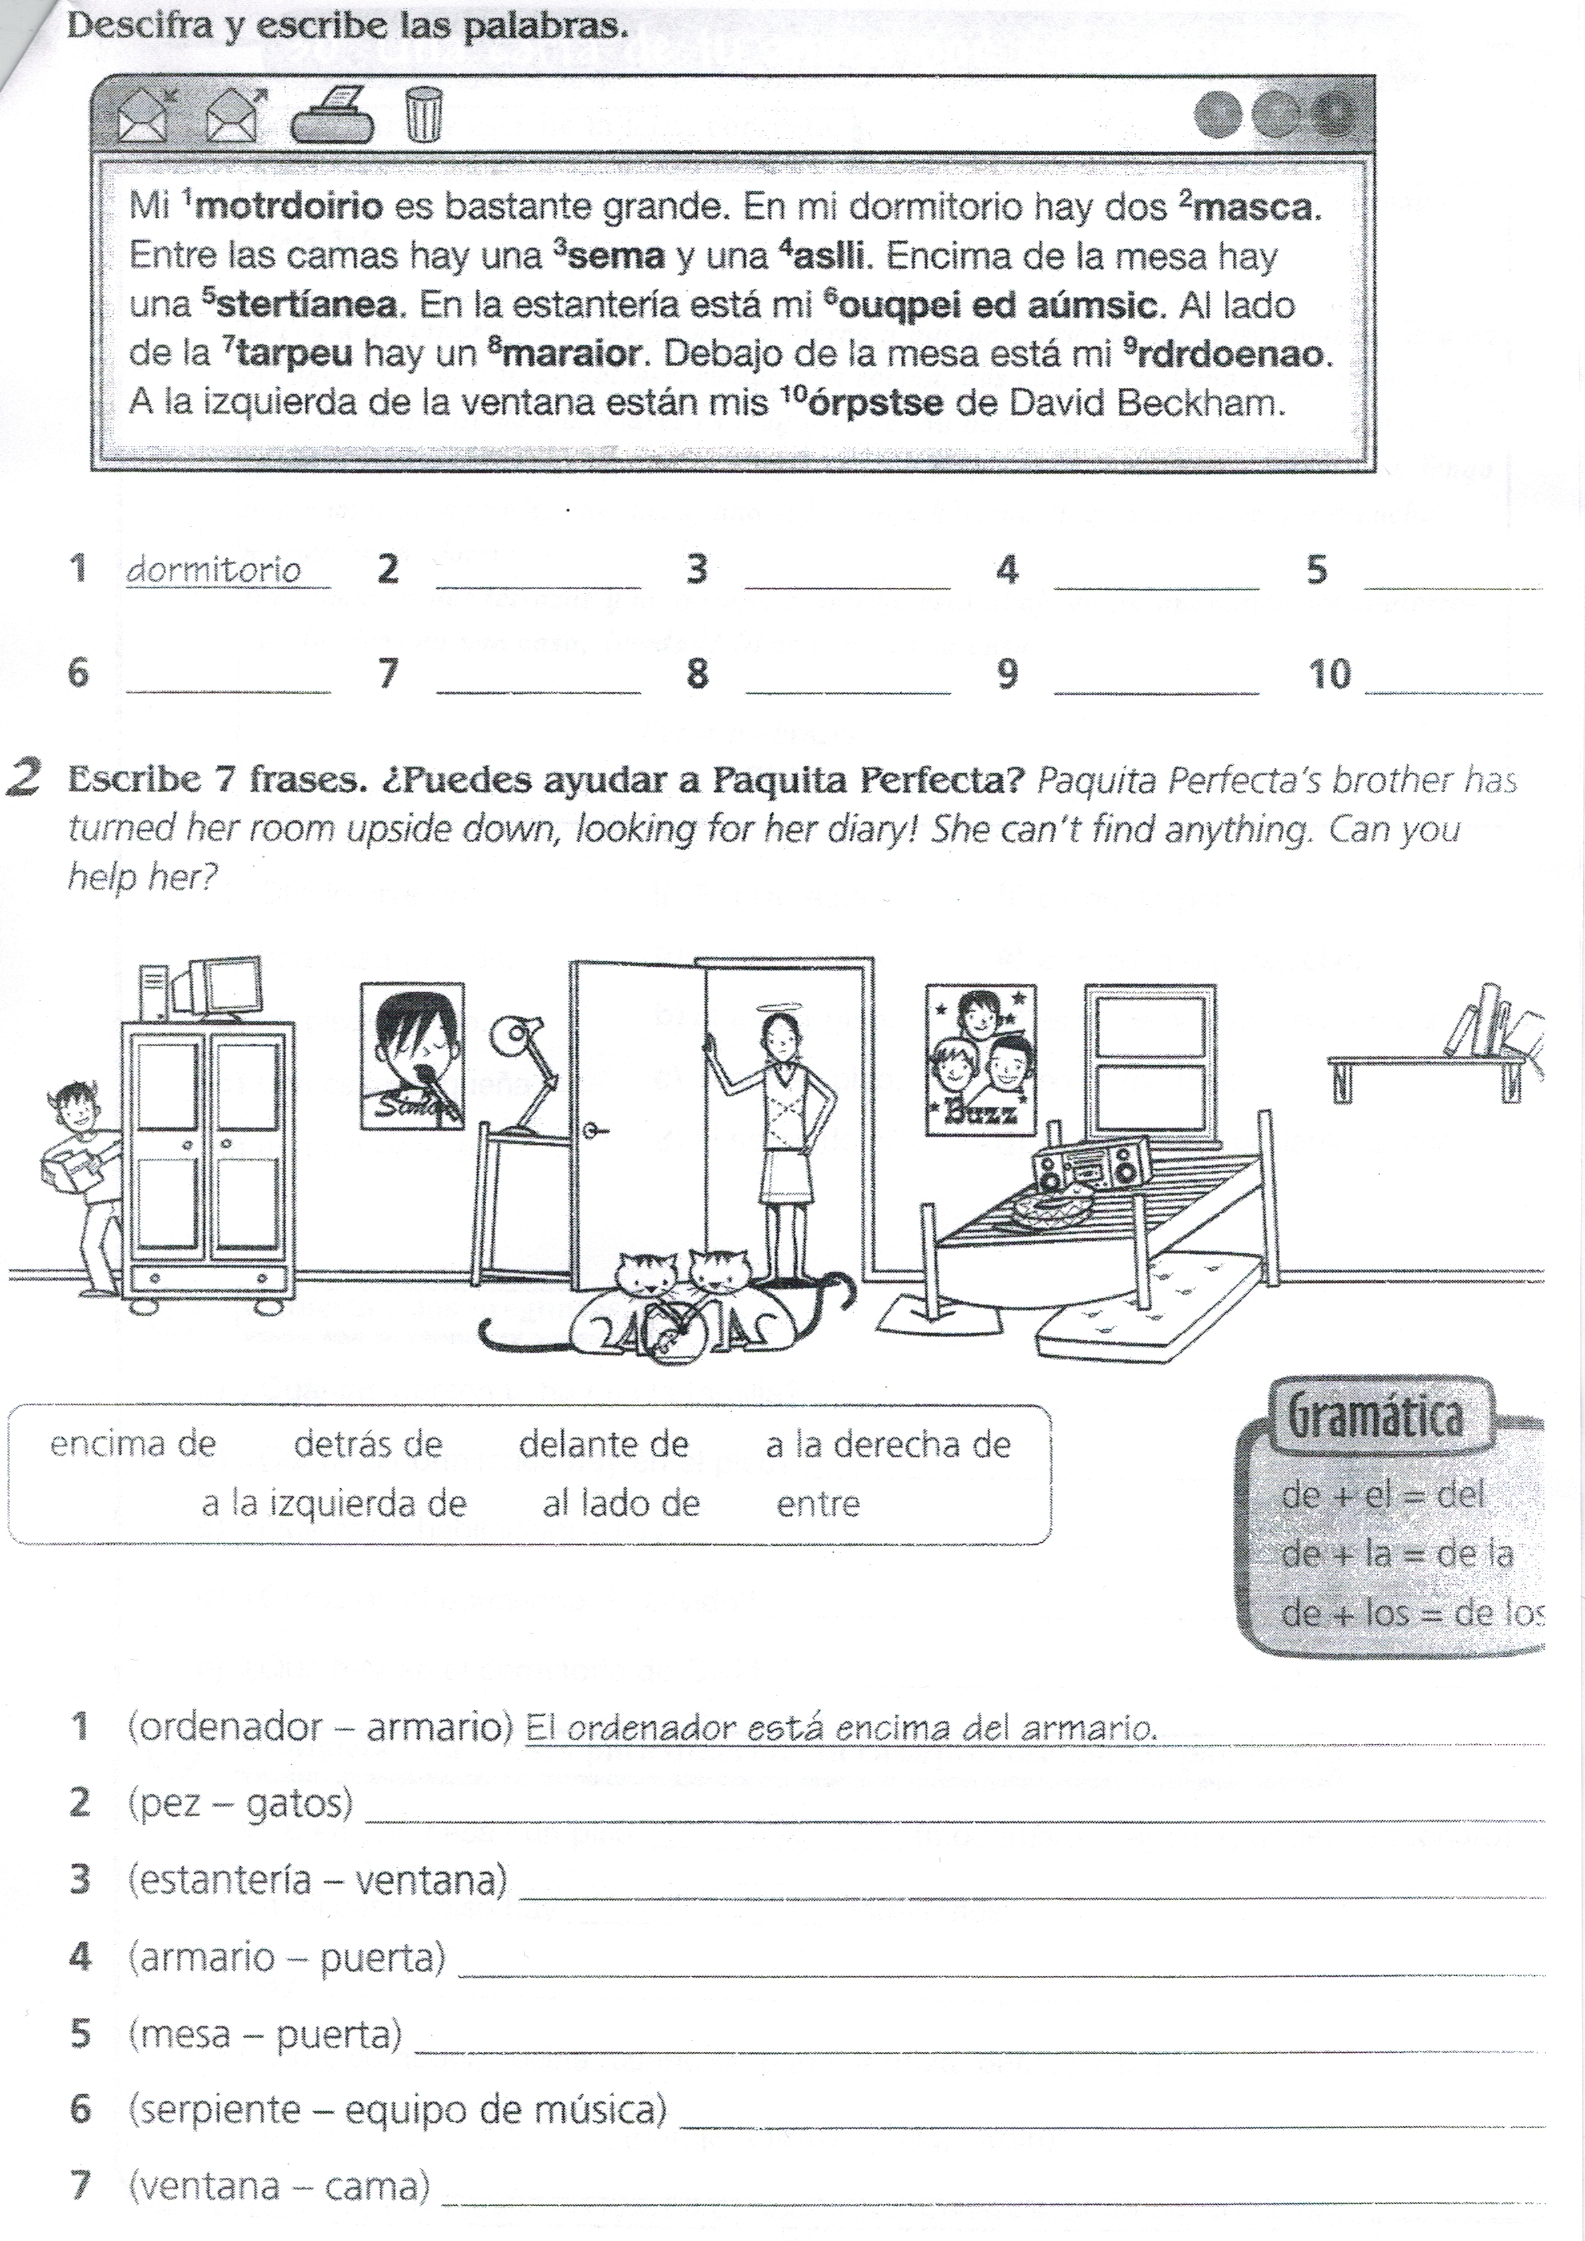 Worksheets Middle School Spanish Worksheets ejercicio una pregunta en materiales pinterest spanish worksheets en